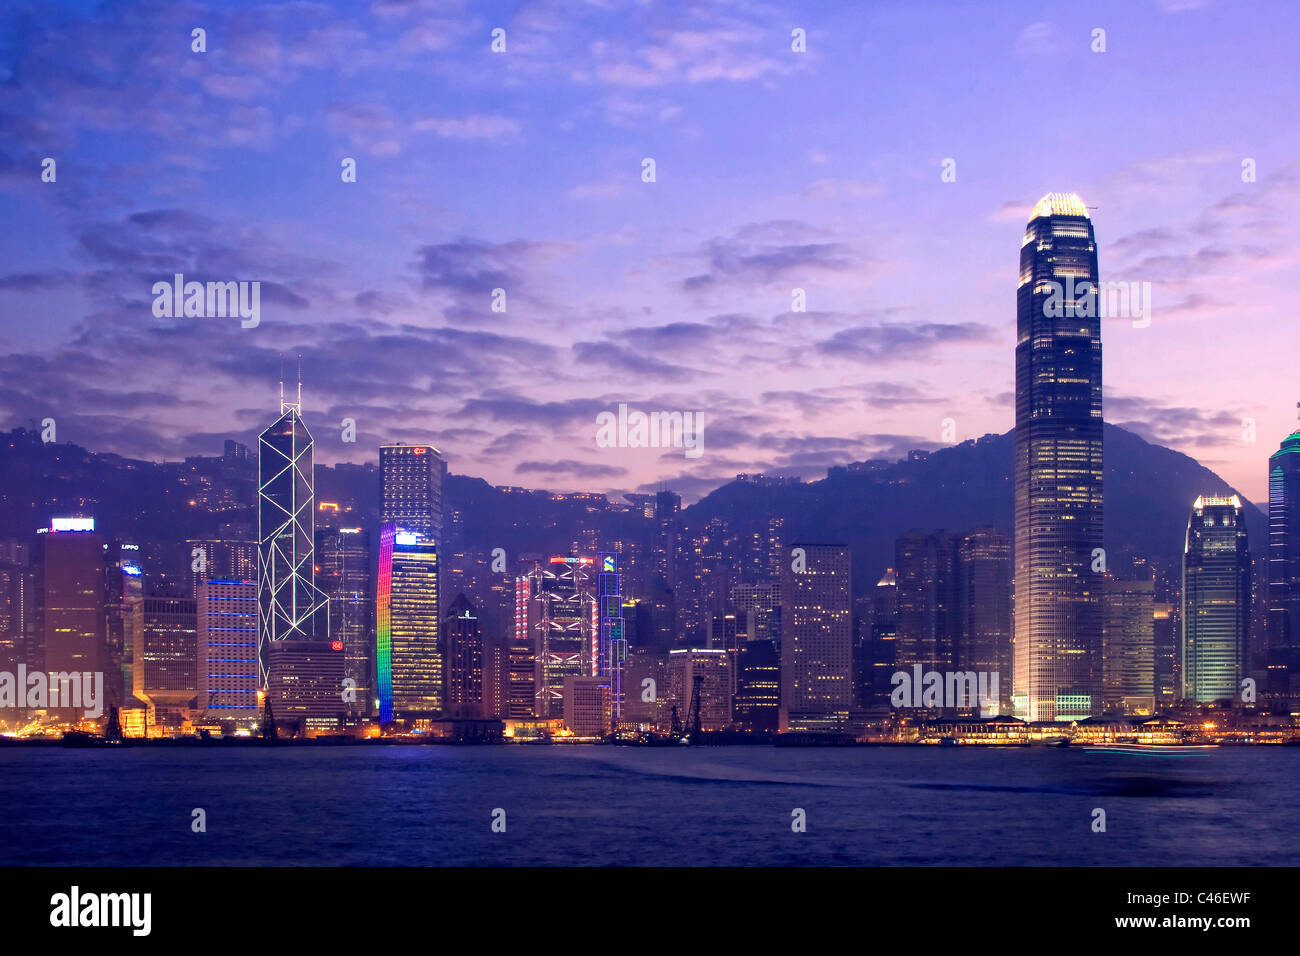 Le port de Victoria et d'horizon de Hong Kong, Hong Kong, Chine Photo Stock